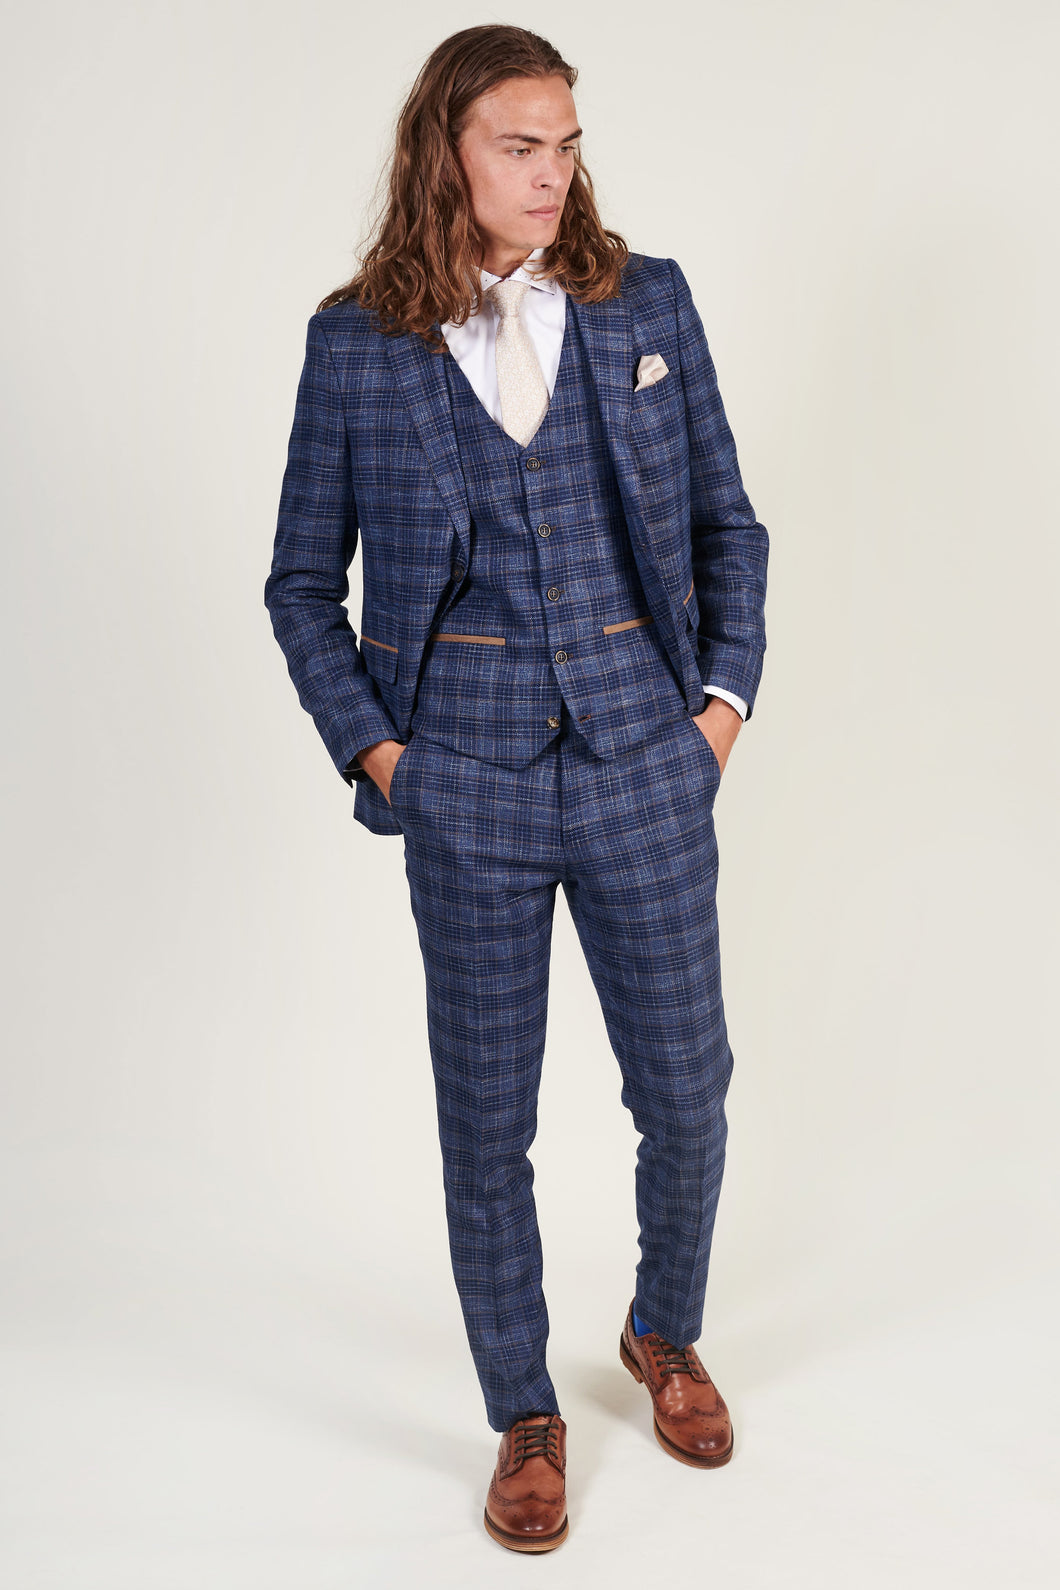 Fratelli Blue & Gold Check 3 Piece Suit fratelli-blue-gold-check-blazer / fratelli-blue-gold-check-waistcoat / fratelli-blue-gold-check-trousers